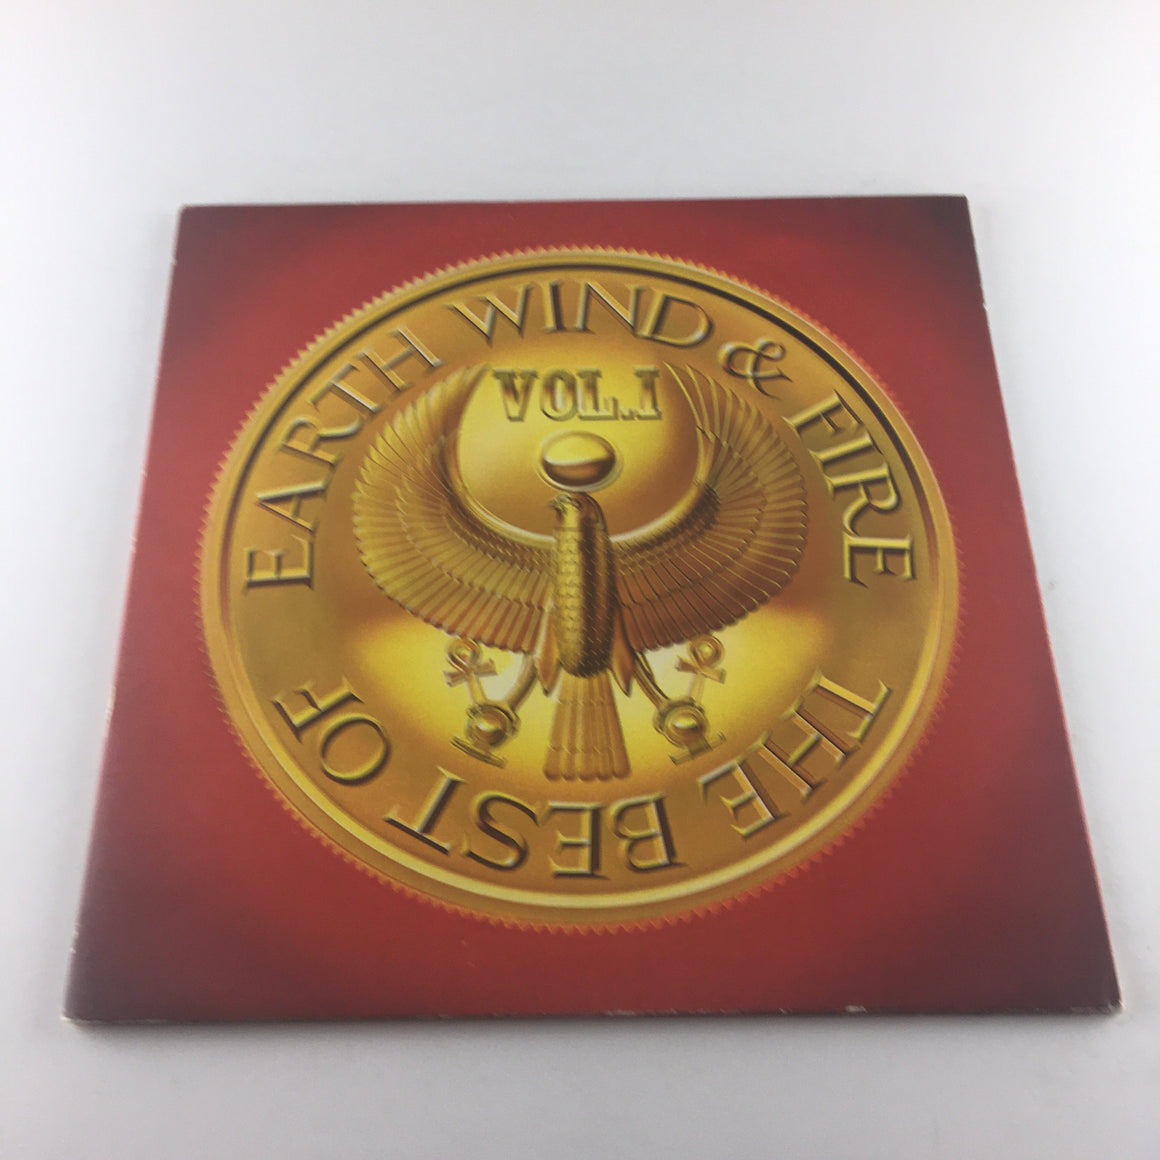 Earth, Wind & Fire The Best Of Earth Wind & Fire Vol. I Used Vinyl LP VG FC 35647